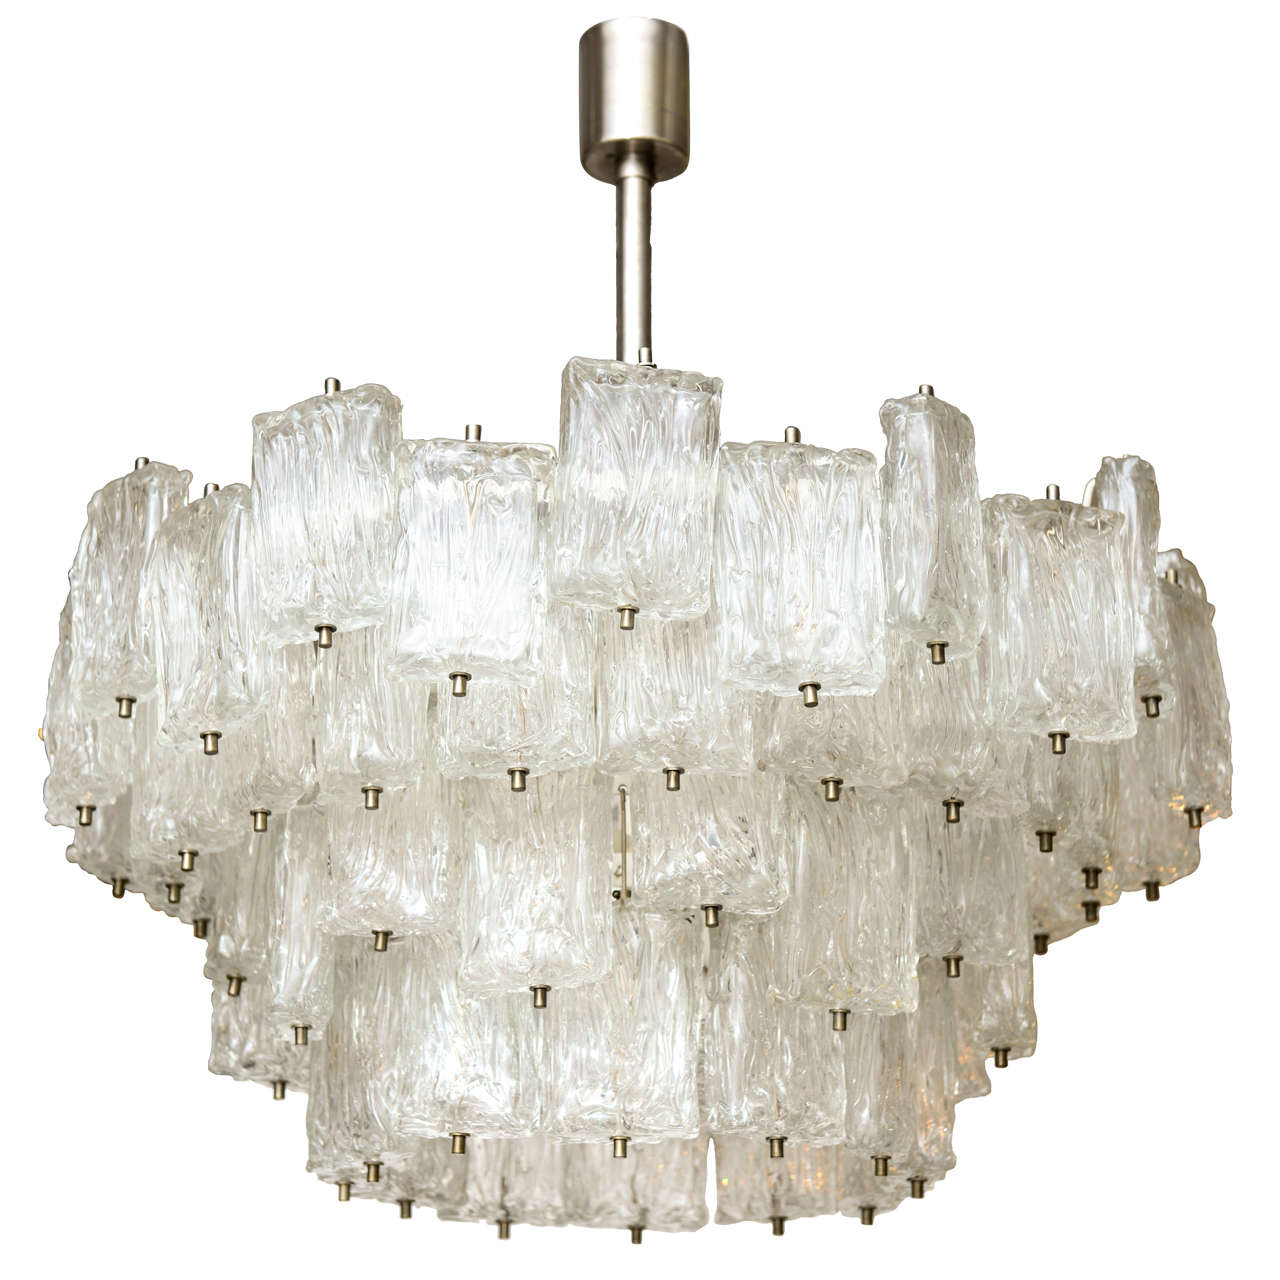 Monumental Signed Barovier e Toso Murano Glass Chandeliers at 1stdibs